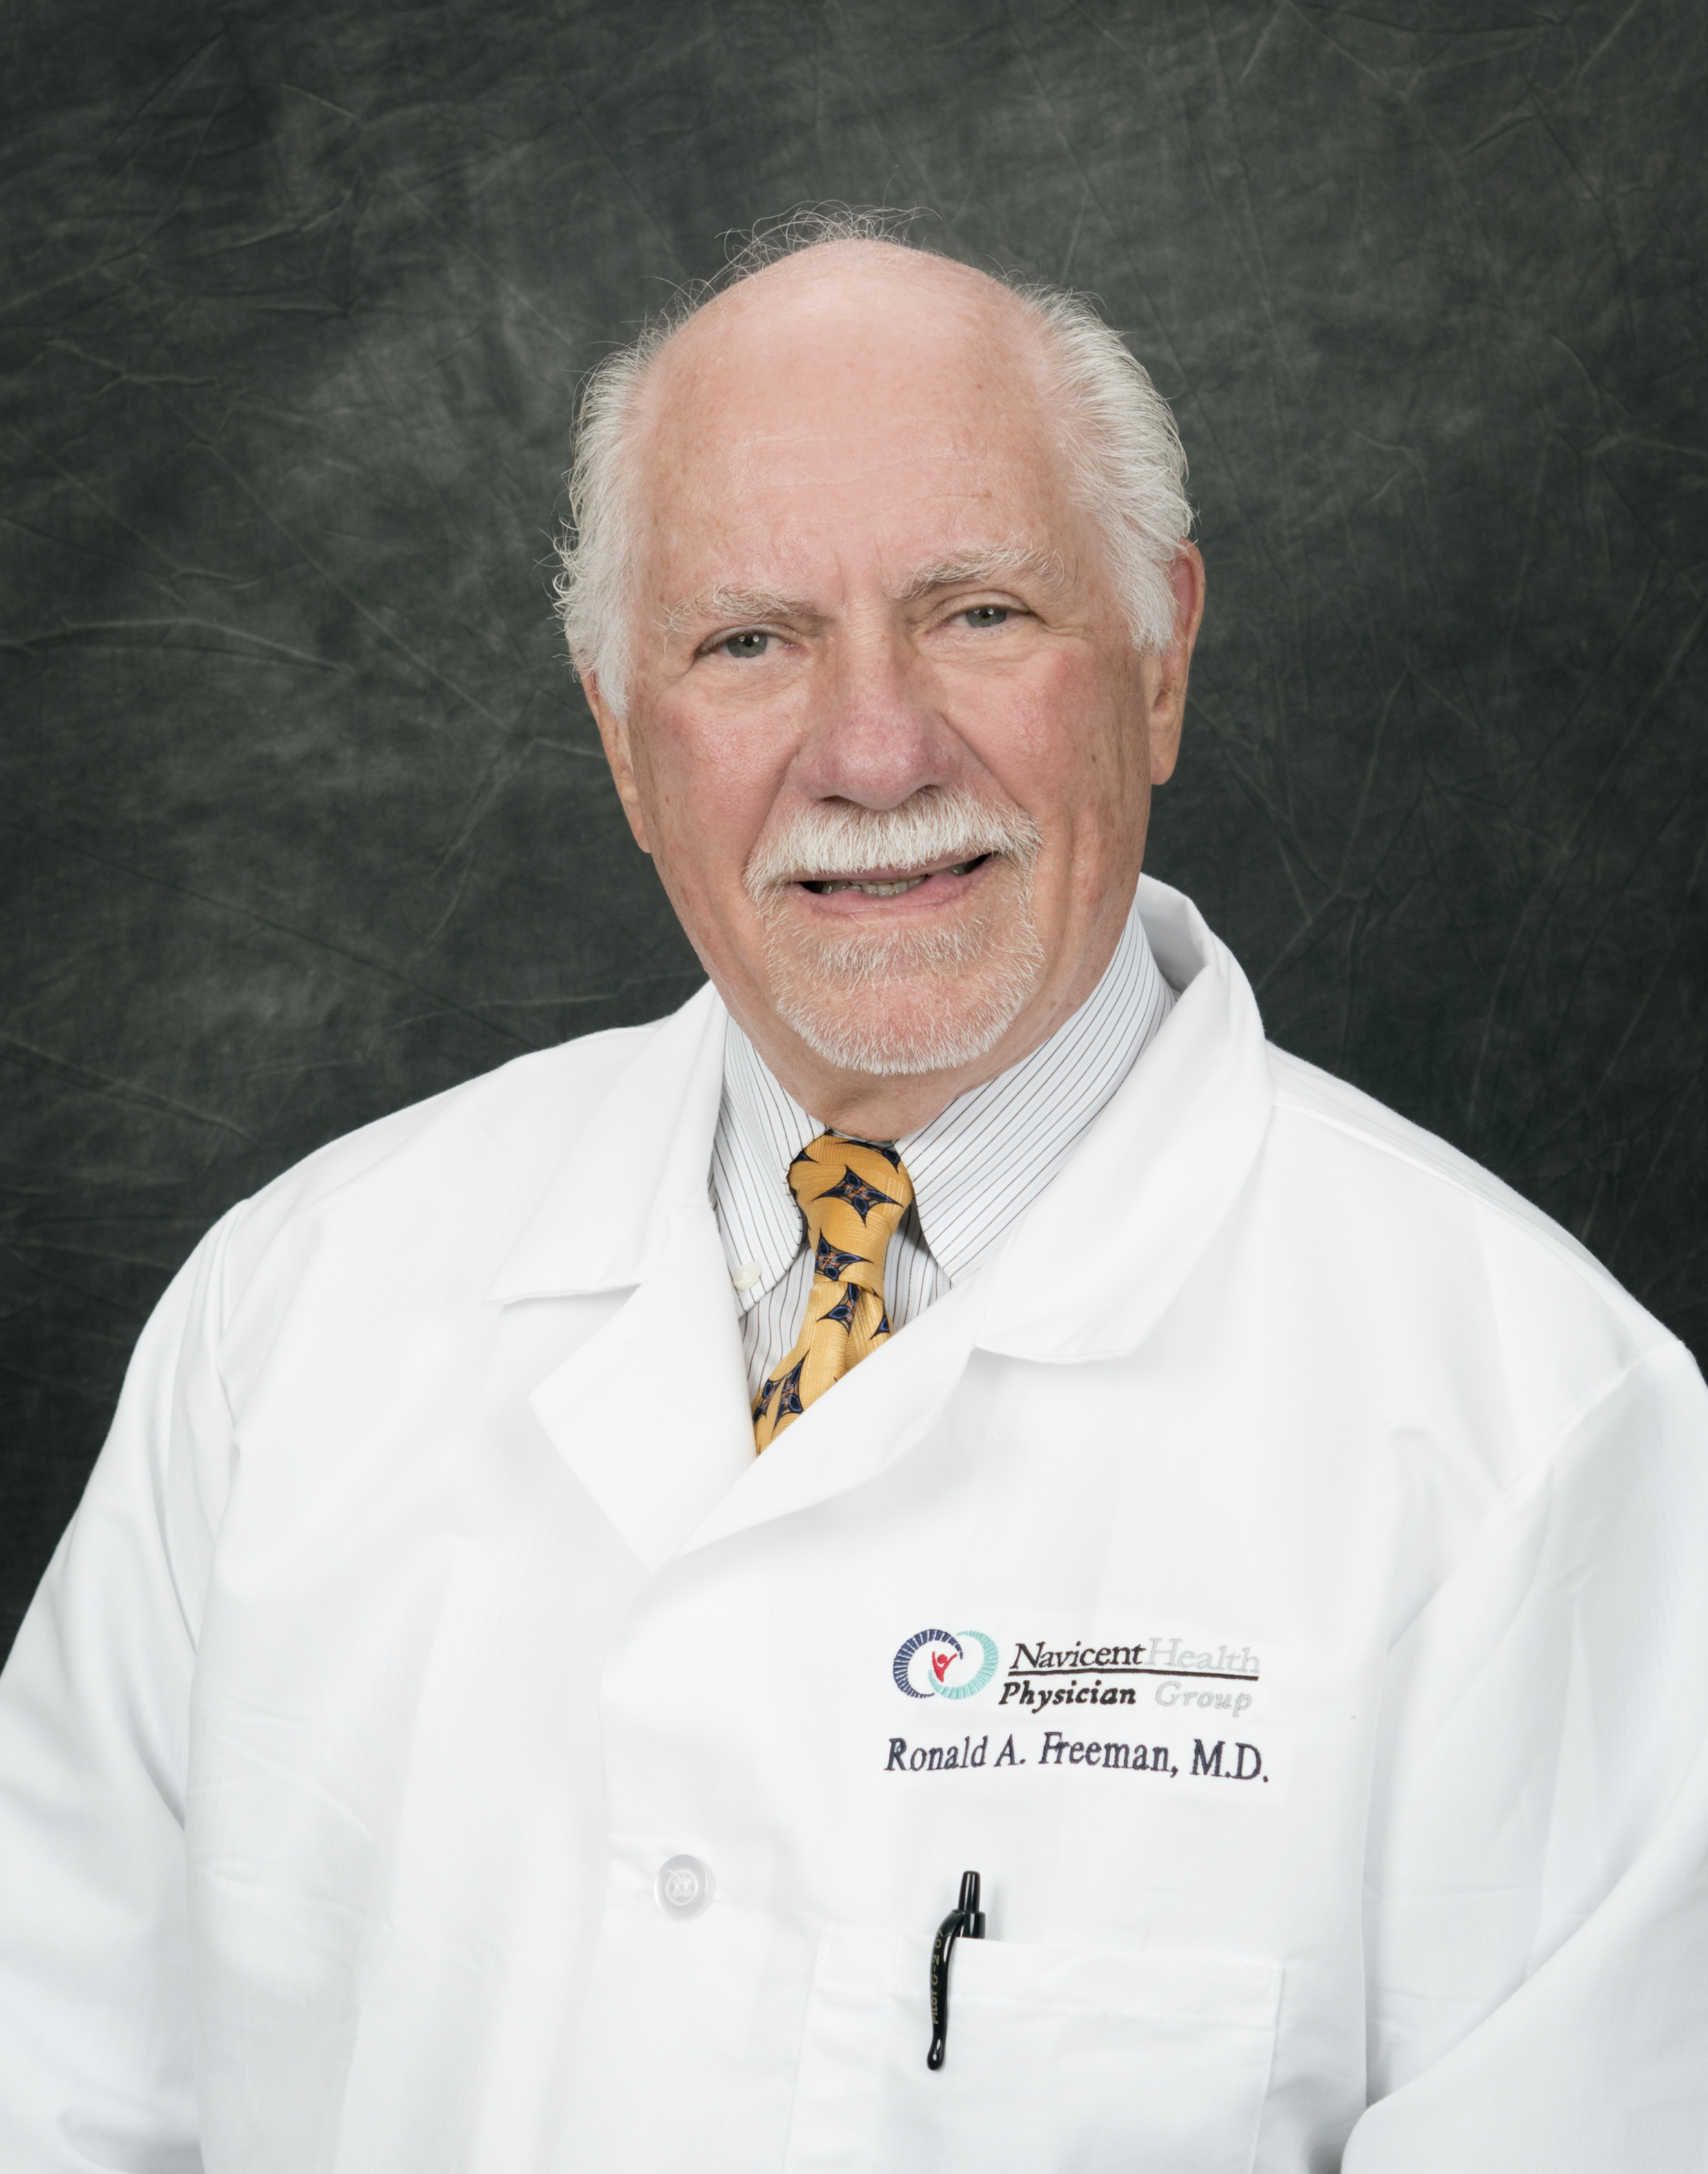 Dr. Ronald Freeman